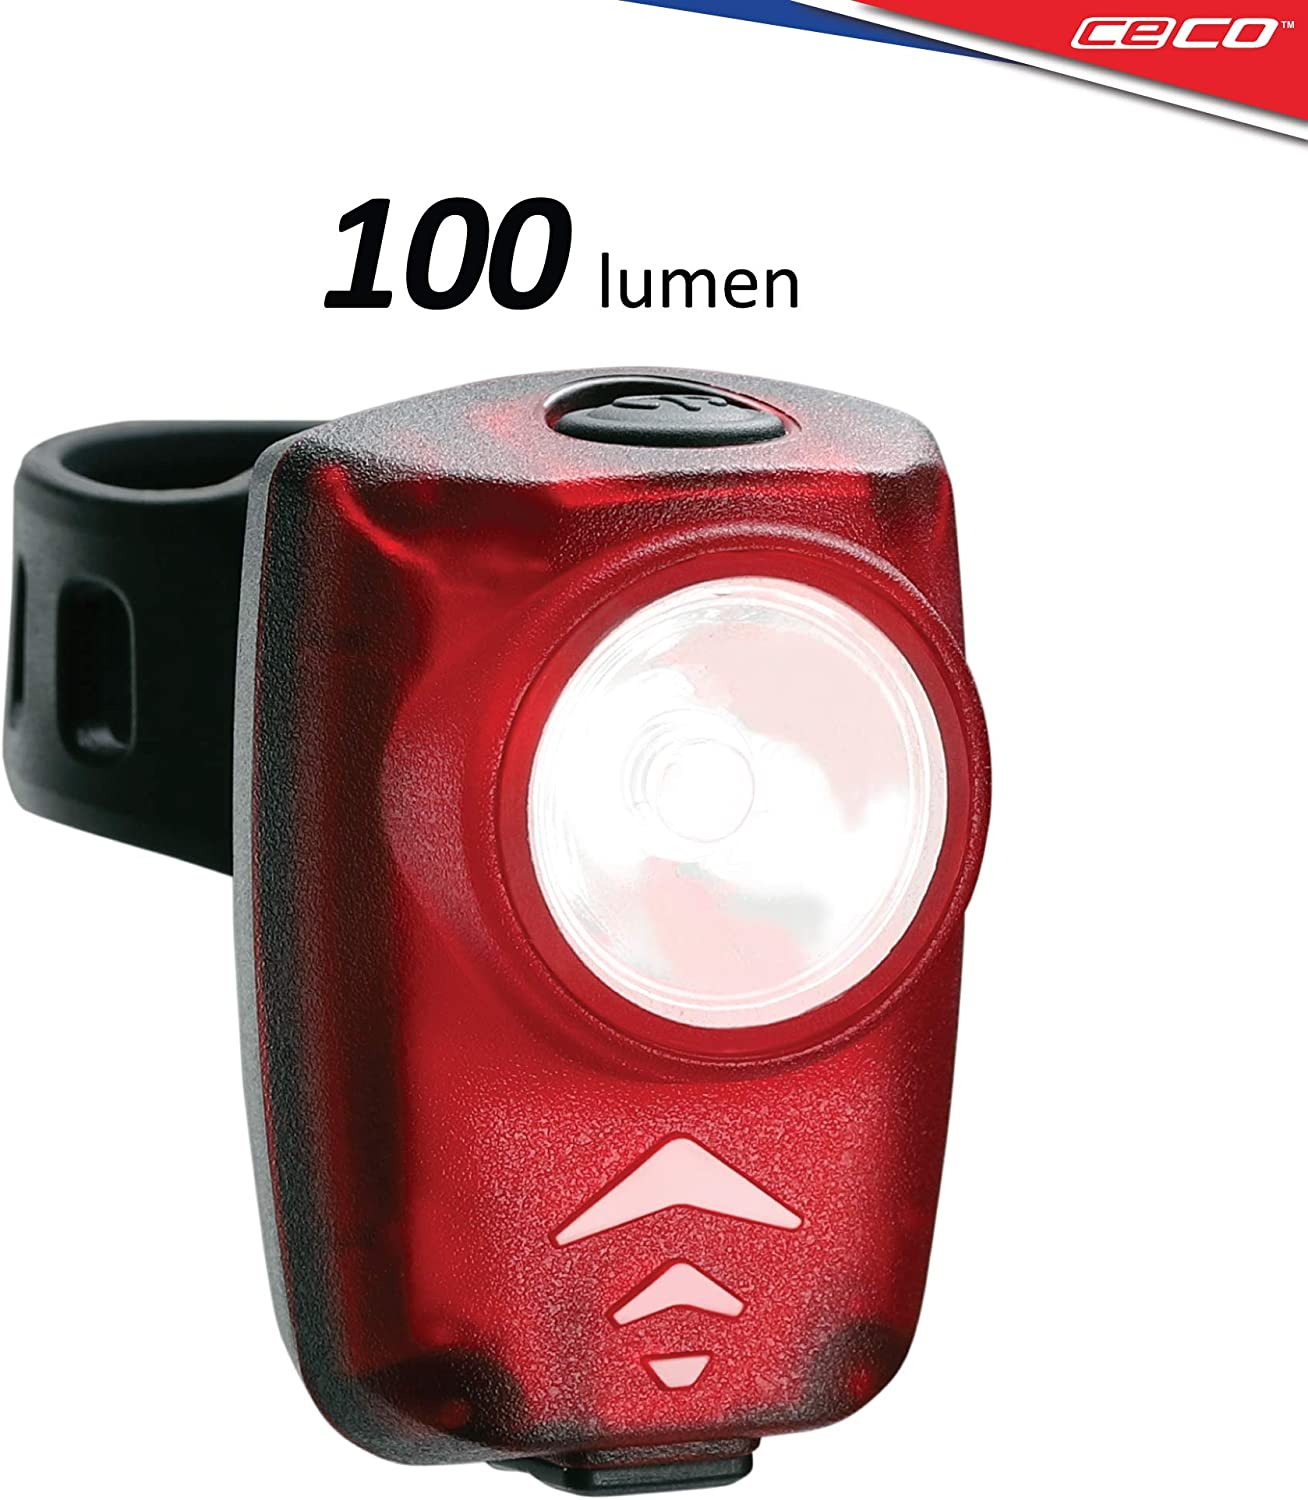 CECO-USA 100 Lumen USB Rechargeable Bike Tail Light – Super Bright Model T100 Bicycle Rear Light – IP67 Waterproof, FL-1 Impact Resistant – Red Safety Light – Pro Grade Quality Bike Tail Light